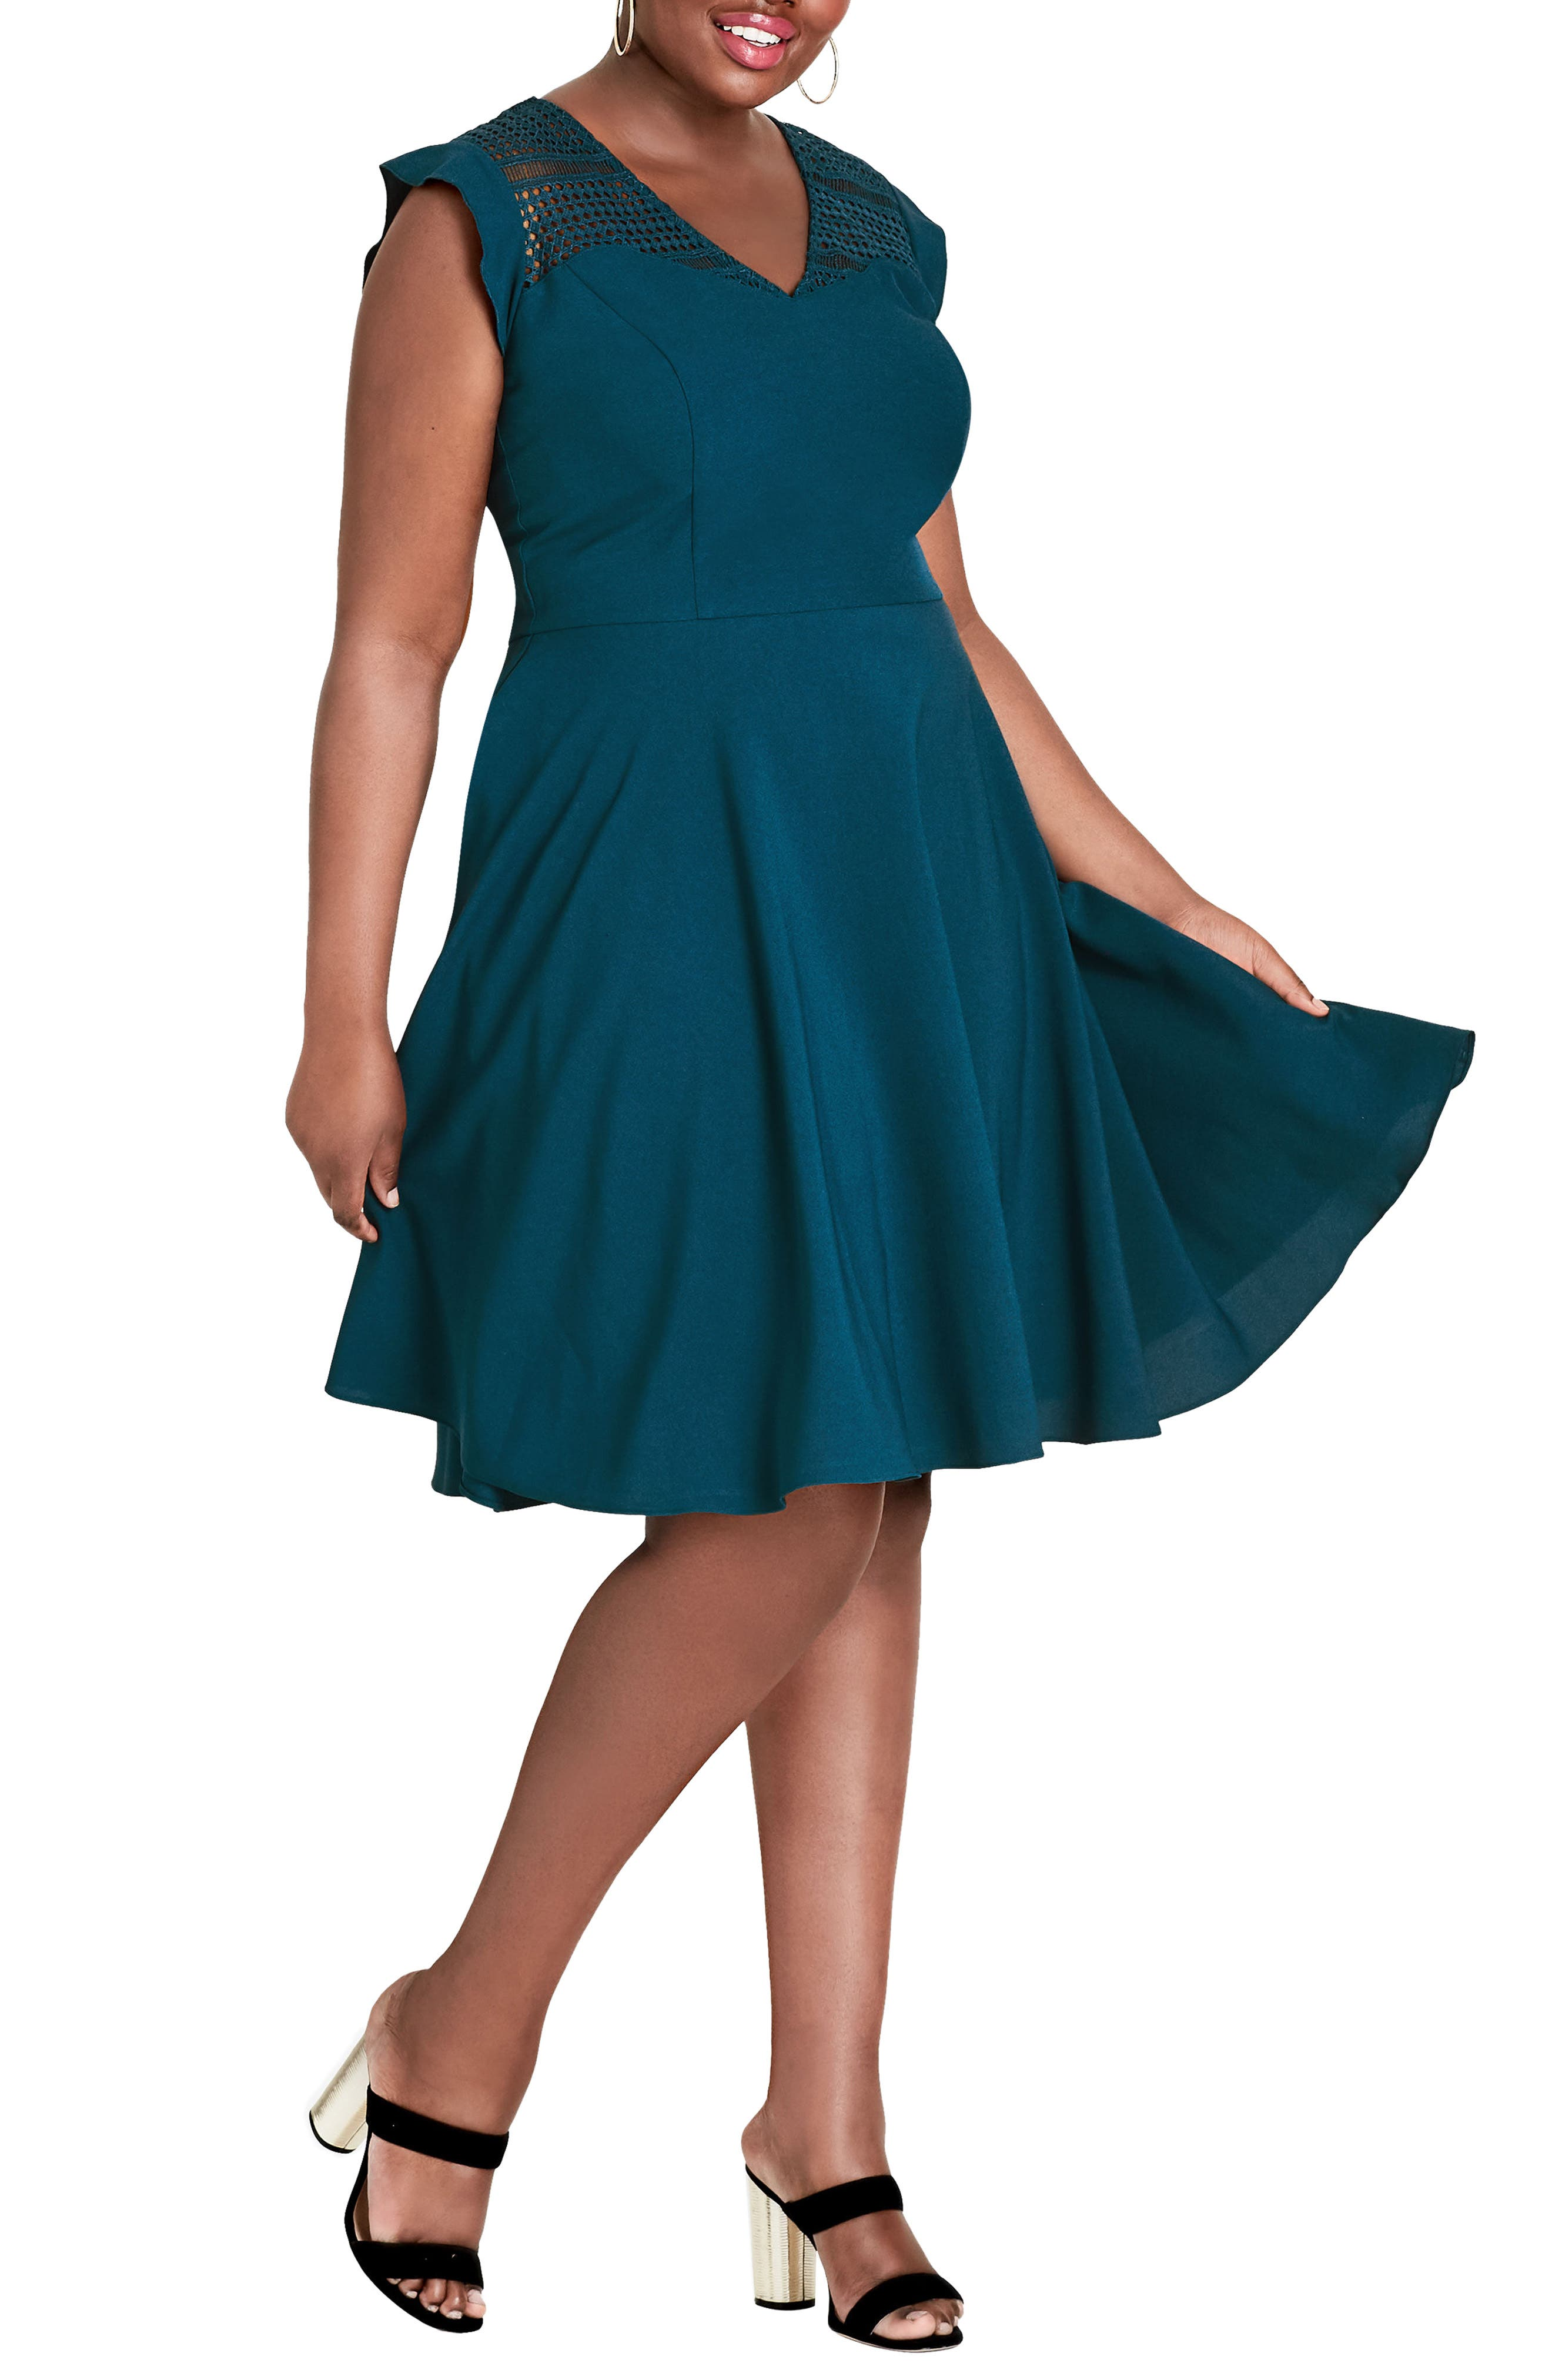 First Place Crochet Yoke Fit & Flare Dress,                             Main thumbnail 1, color,                             Teal